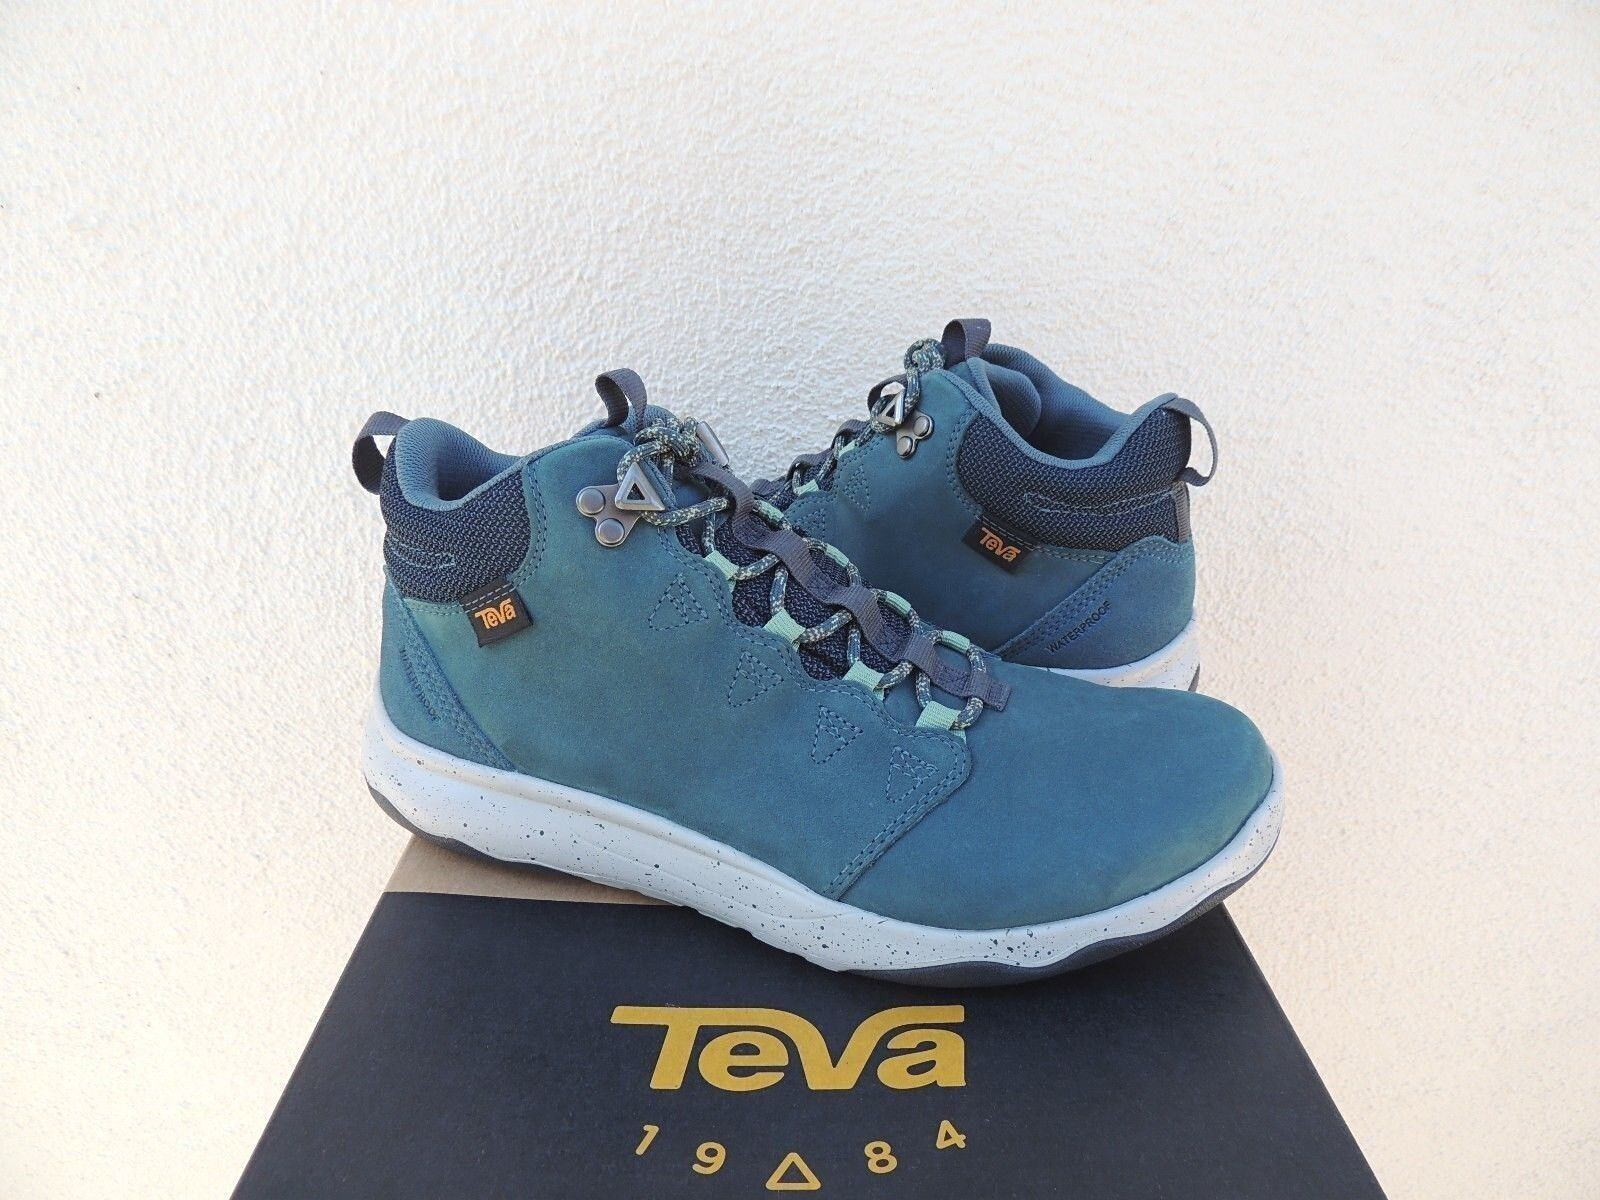 TEVA STARGAZER ARROWOOD LUX MID WP LEATHER SNEAKER BOOTS, US 9/ ~NEW